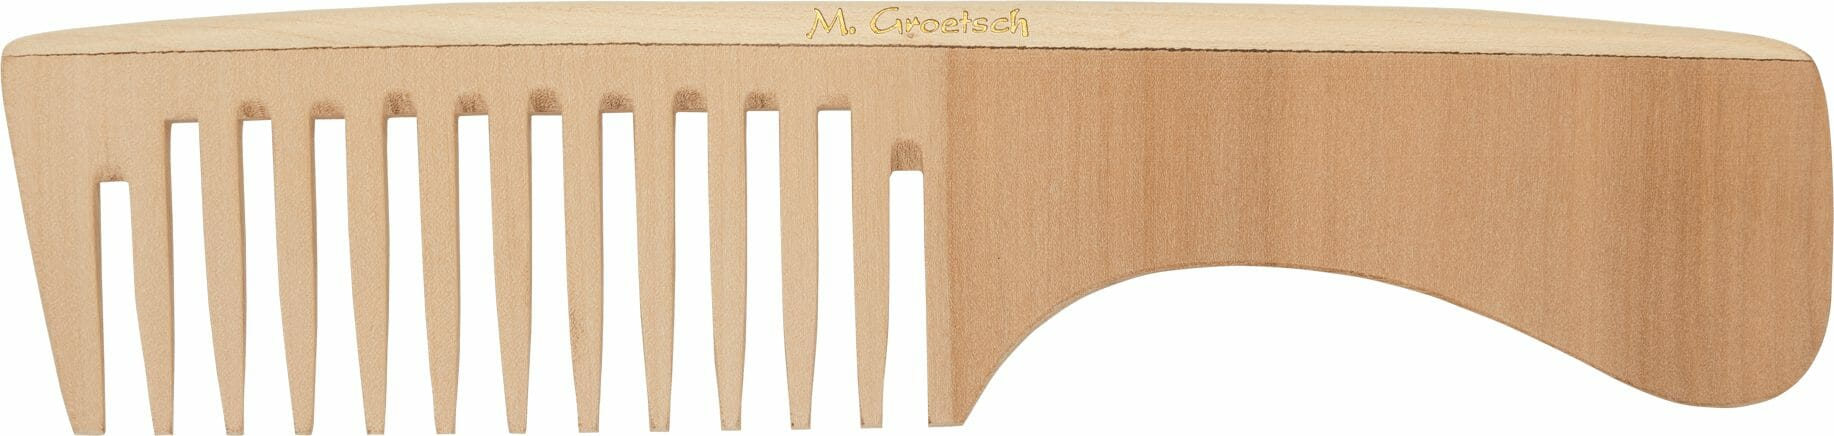 wooden handle comb extrawide toothed